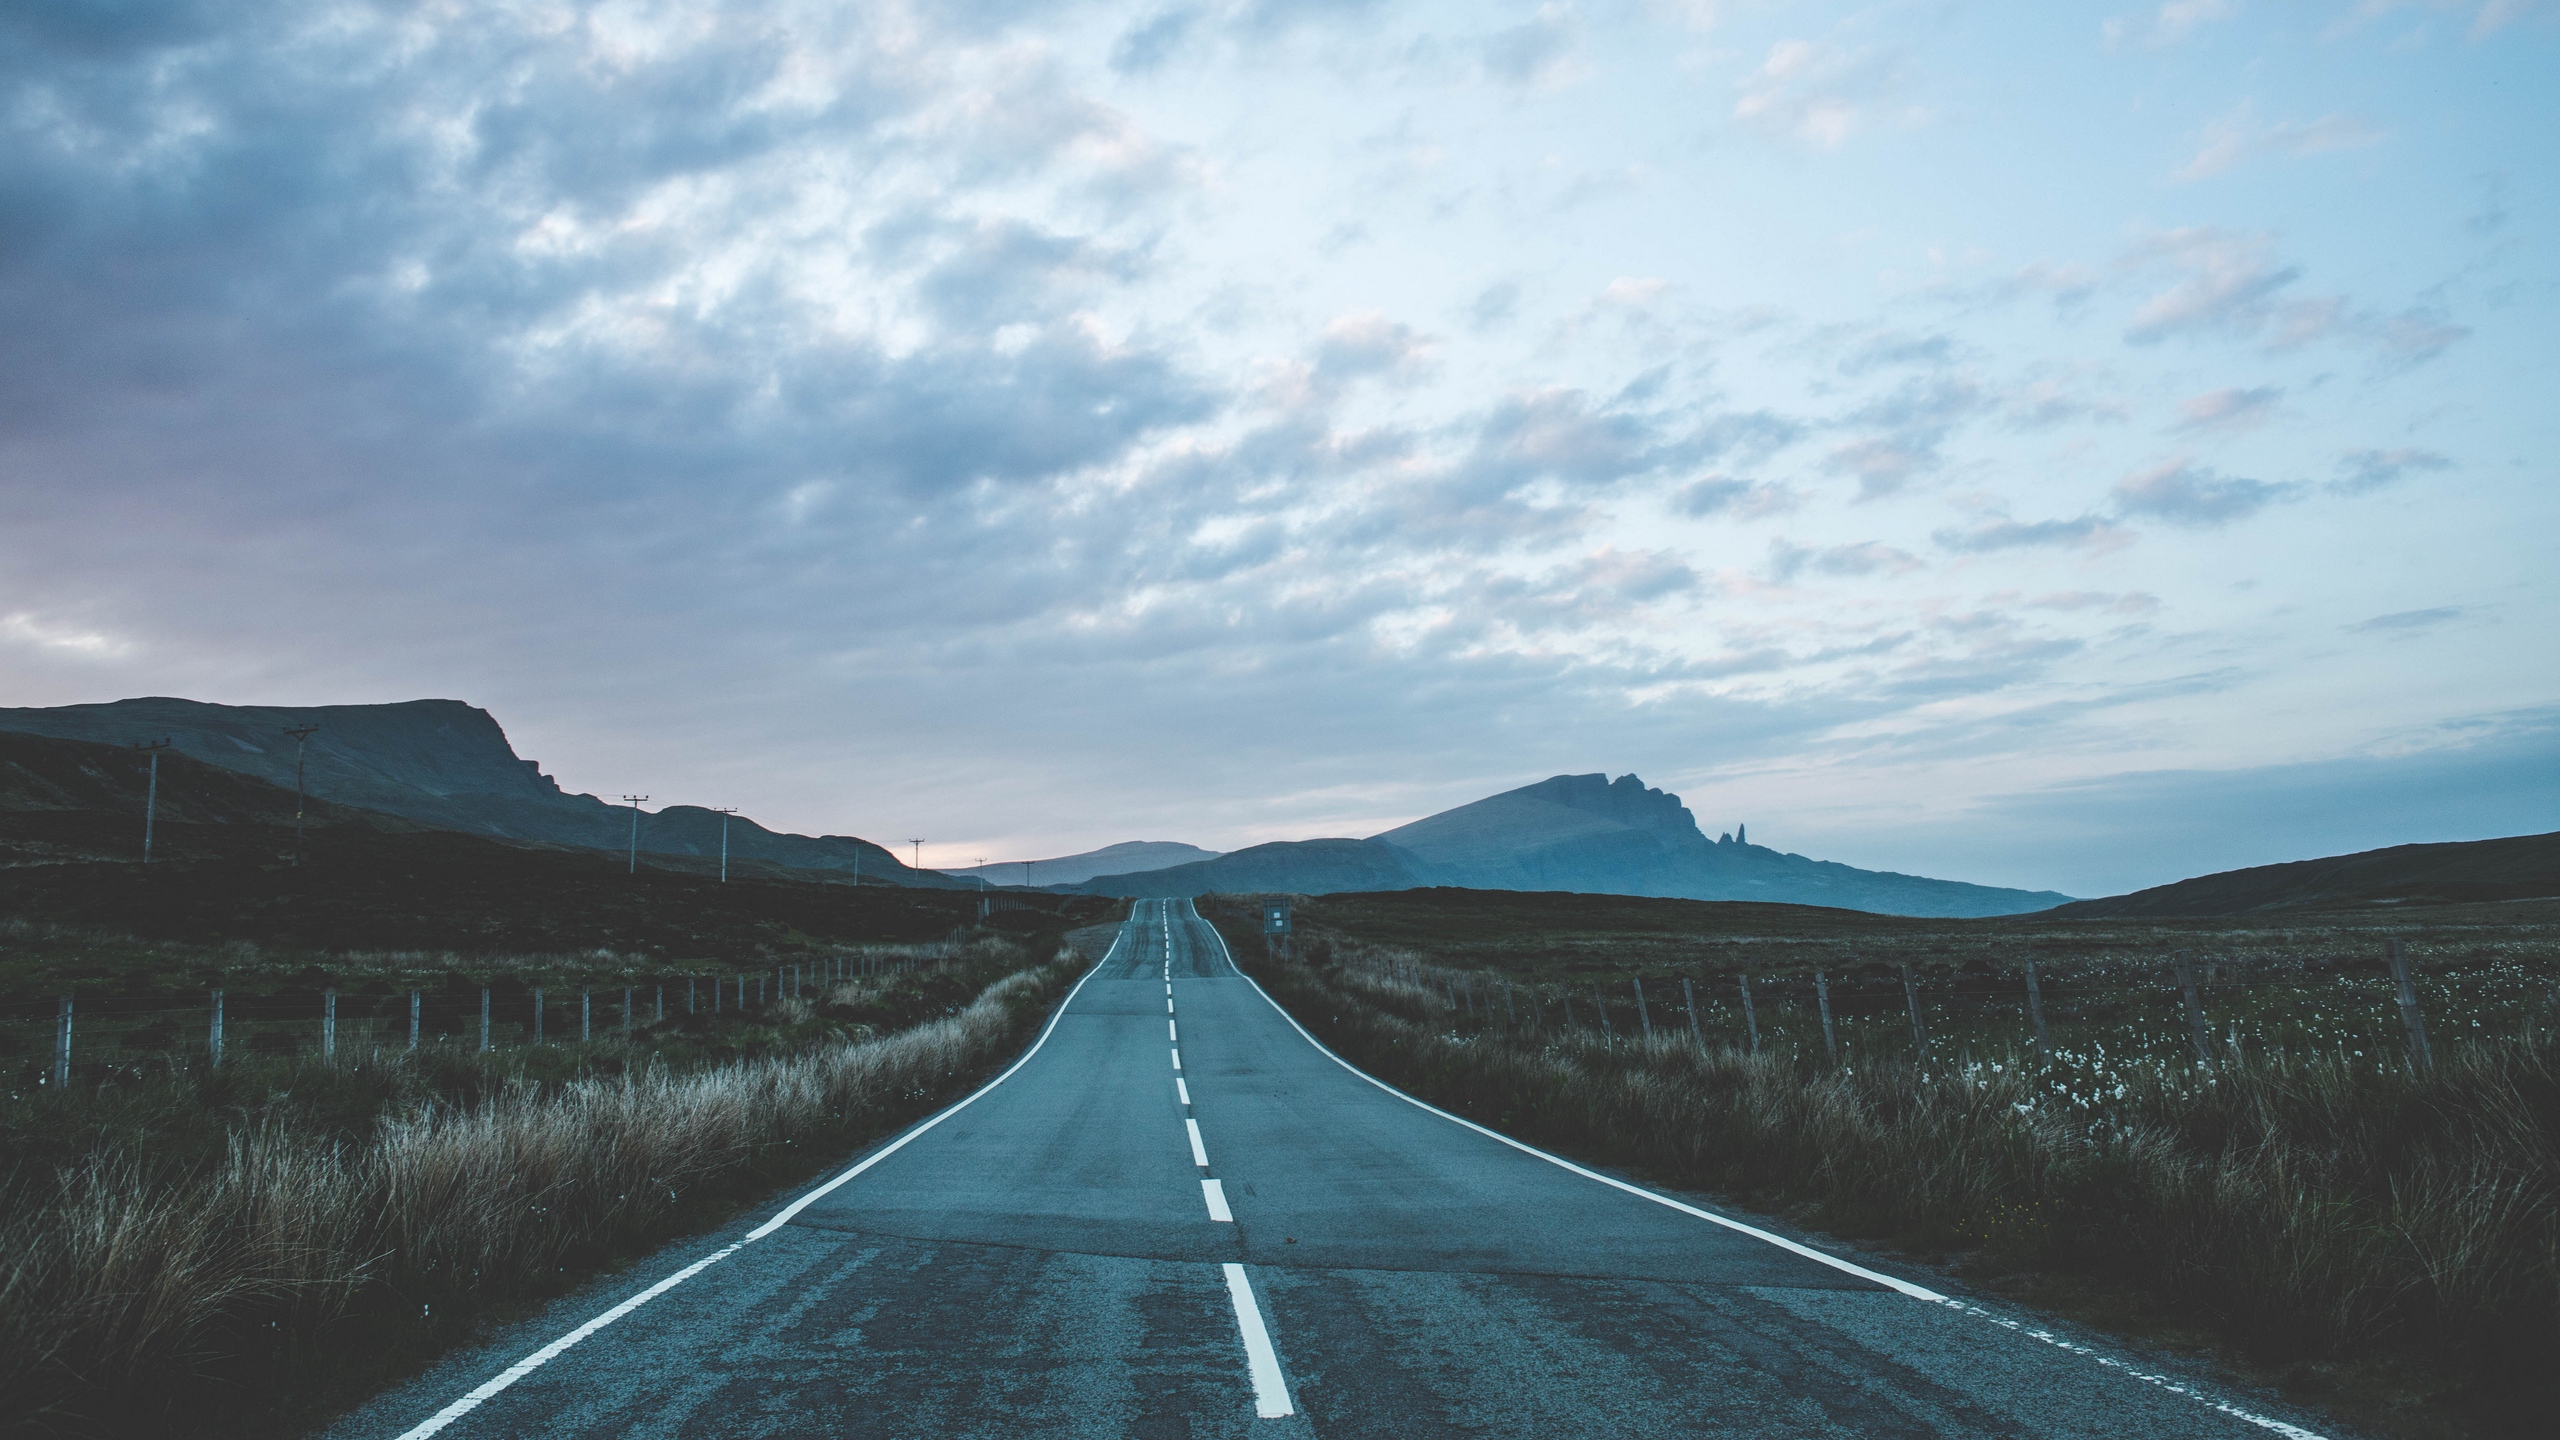 Download wallpaper 2560x1440 road marking mountains portree 2560x1440